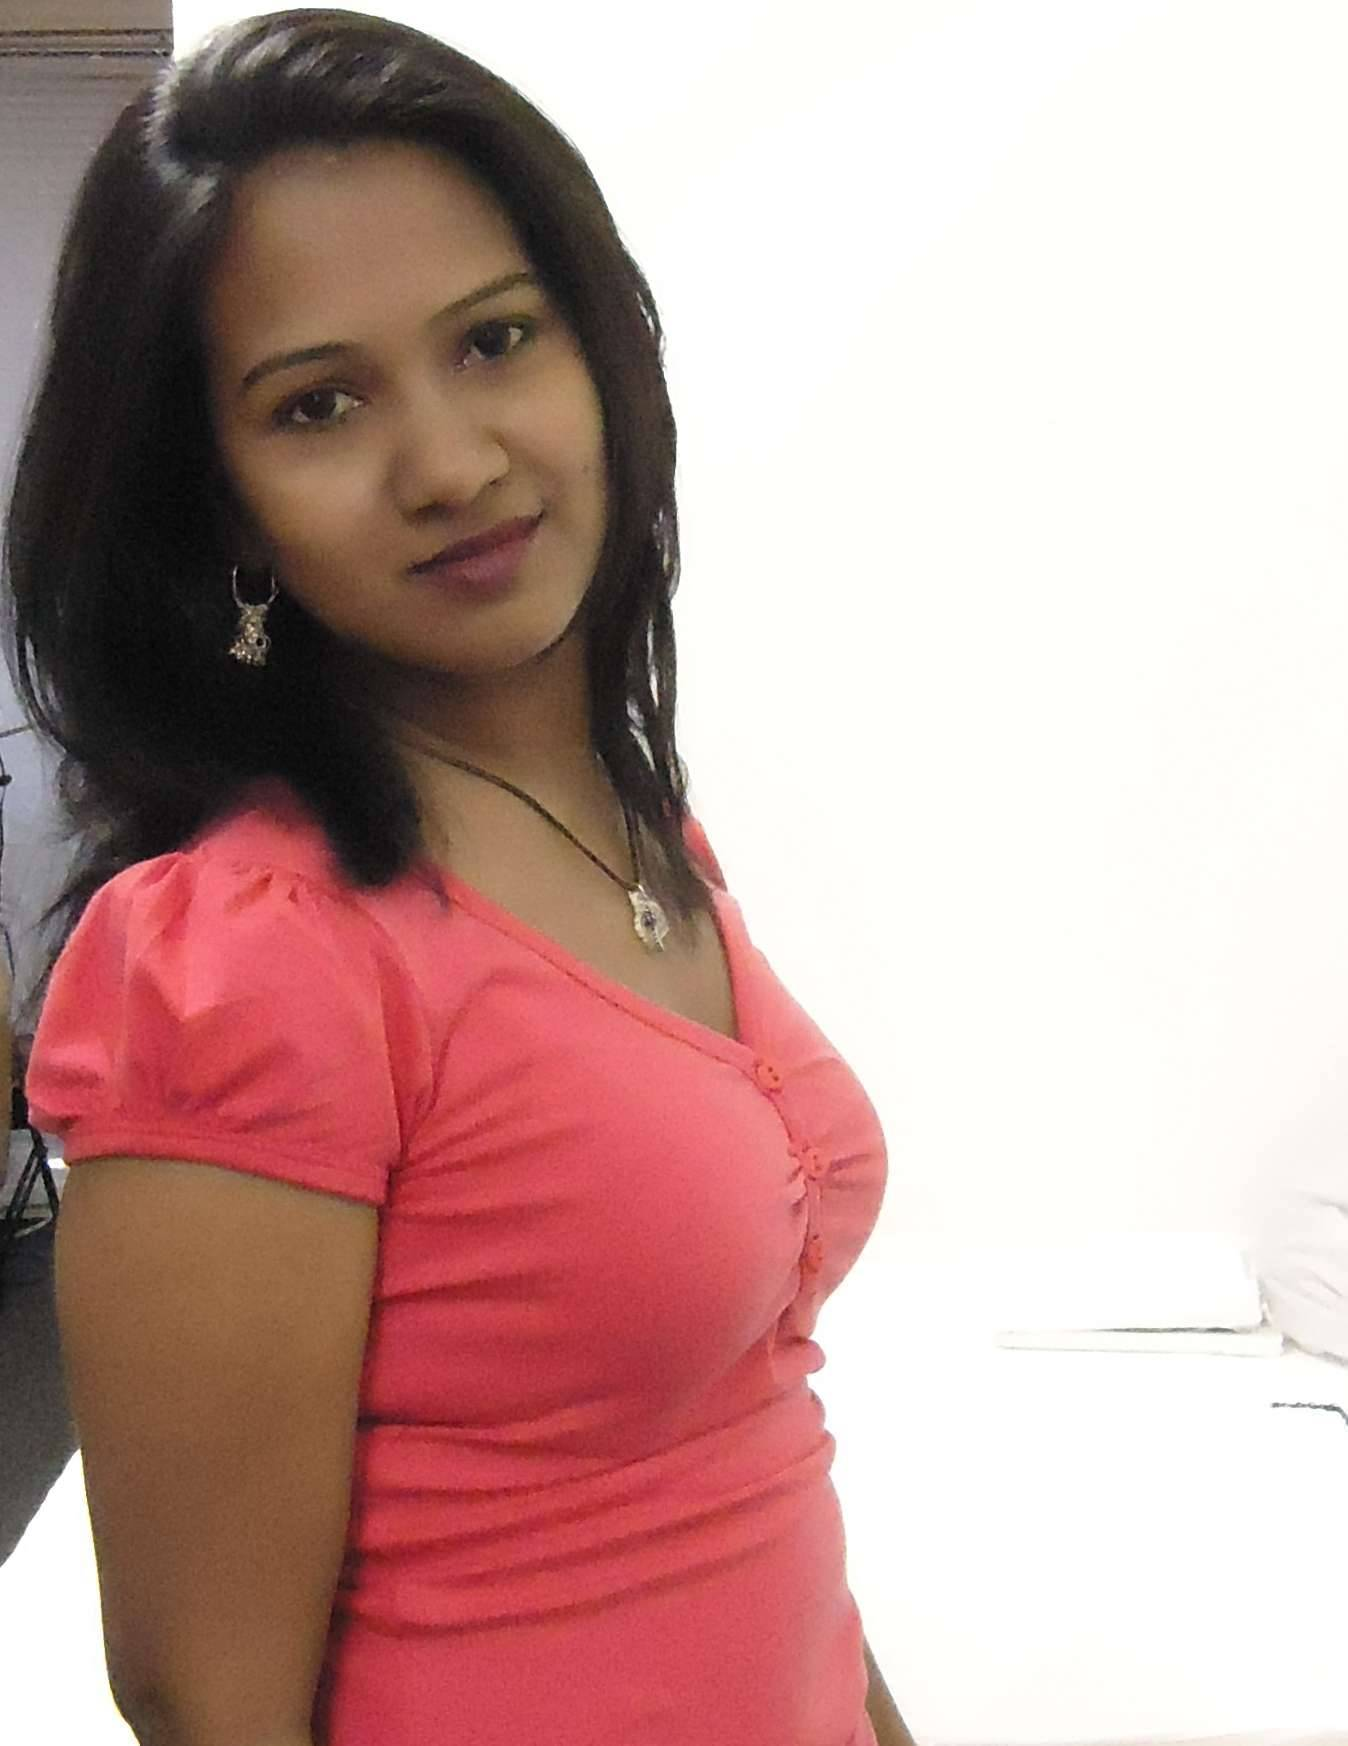 hindu singles in wabbaseka Meet hindu indonesian singles interested in dating there are 1000s of profiles to view for free at indonesiancupidcom - join today - page 5.